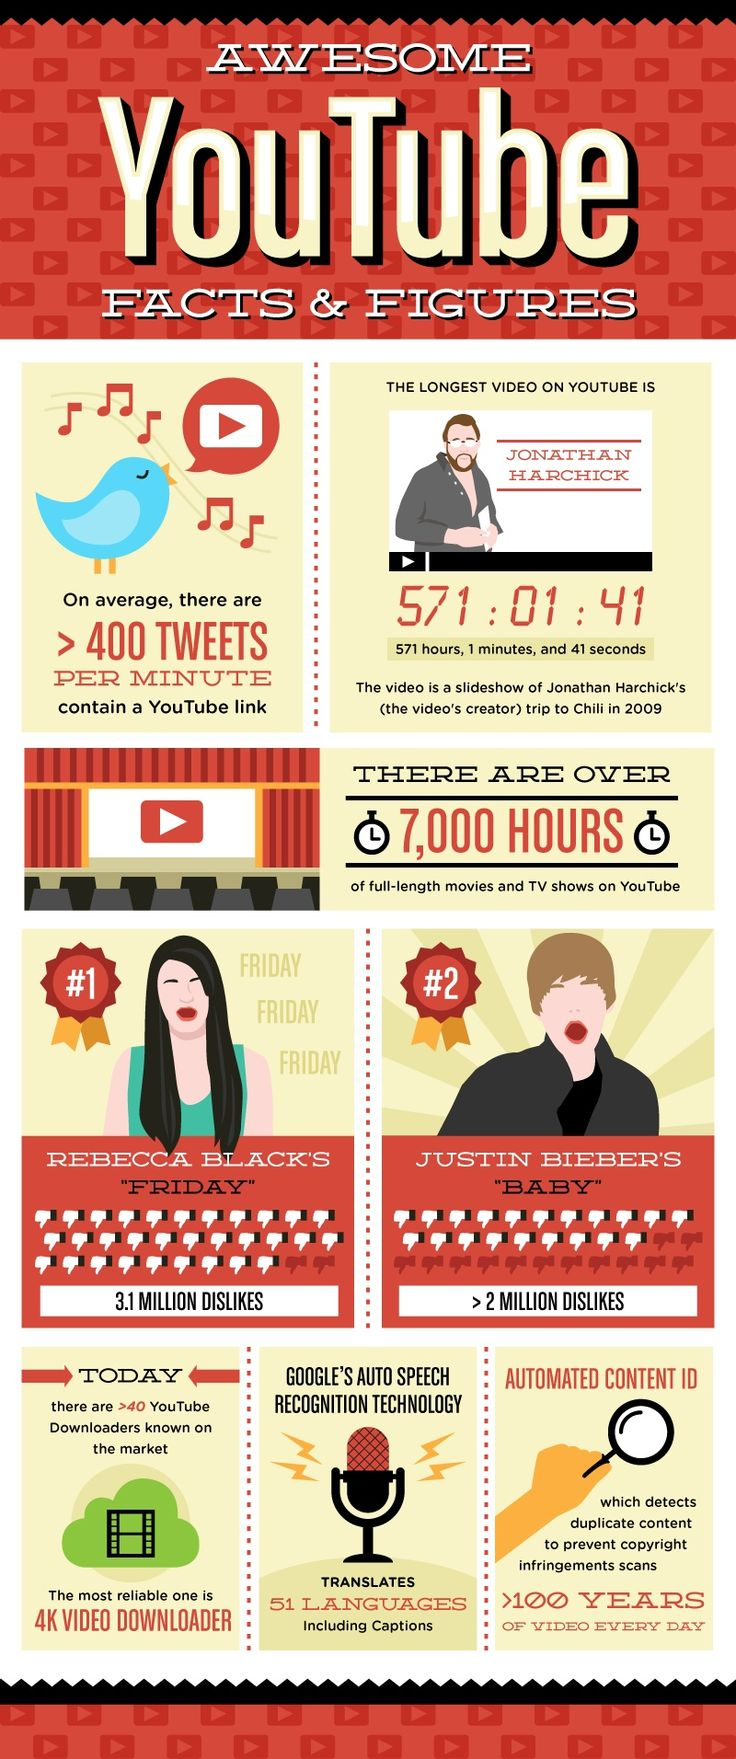 8 Awesome YouTube Facts and Figures #INFOGRAPHIC